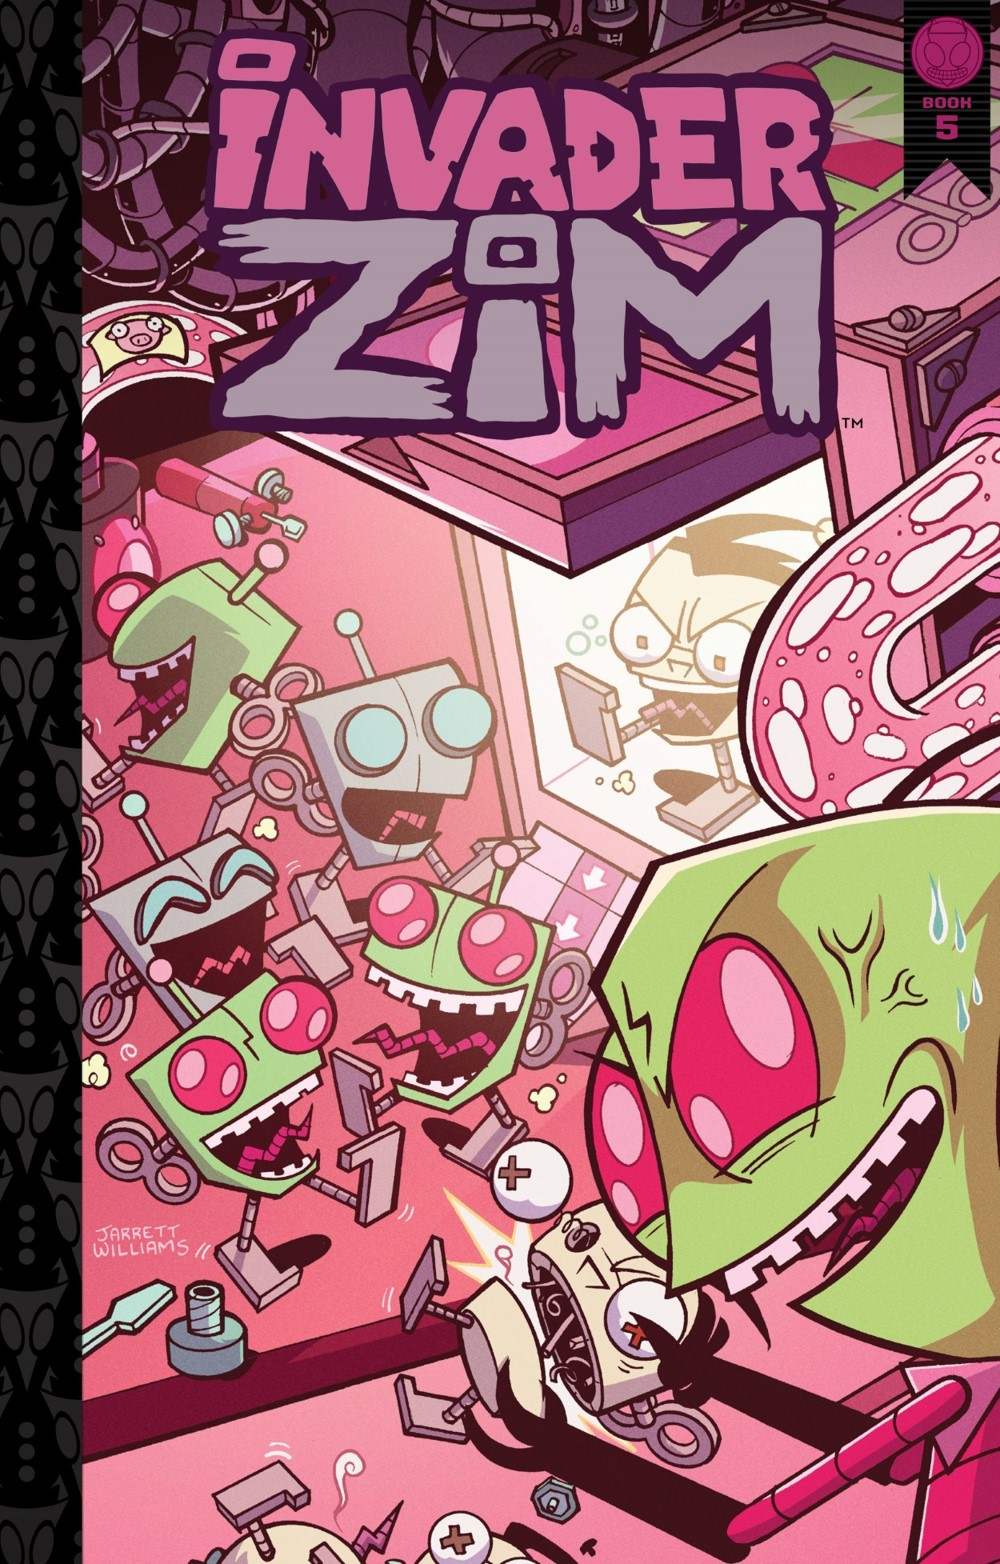 INVADERZIM5-HC-REFERENCE-001 ComicList Previews: INVADER ZIM DELUXE EDITION VOLUME 5 HC